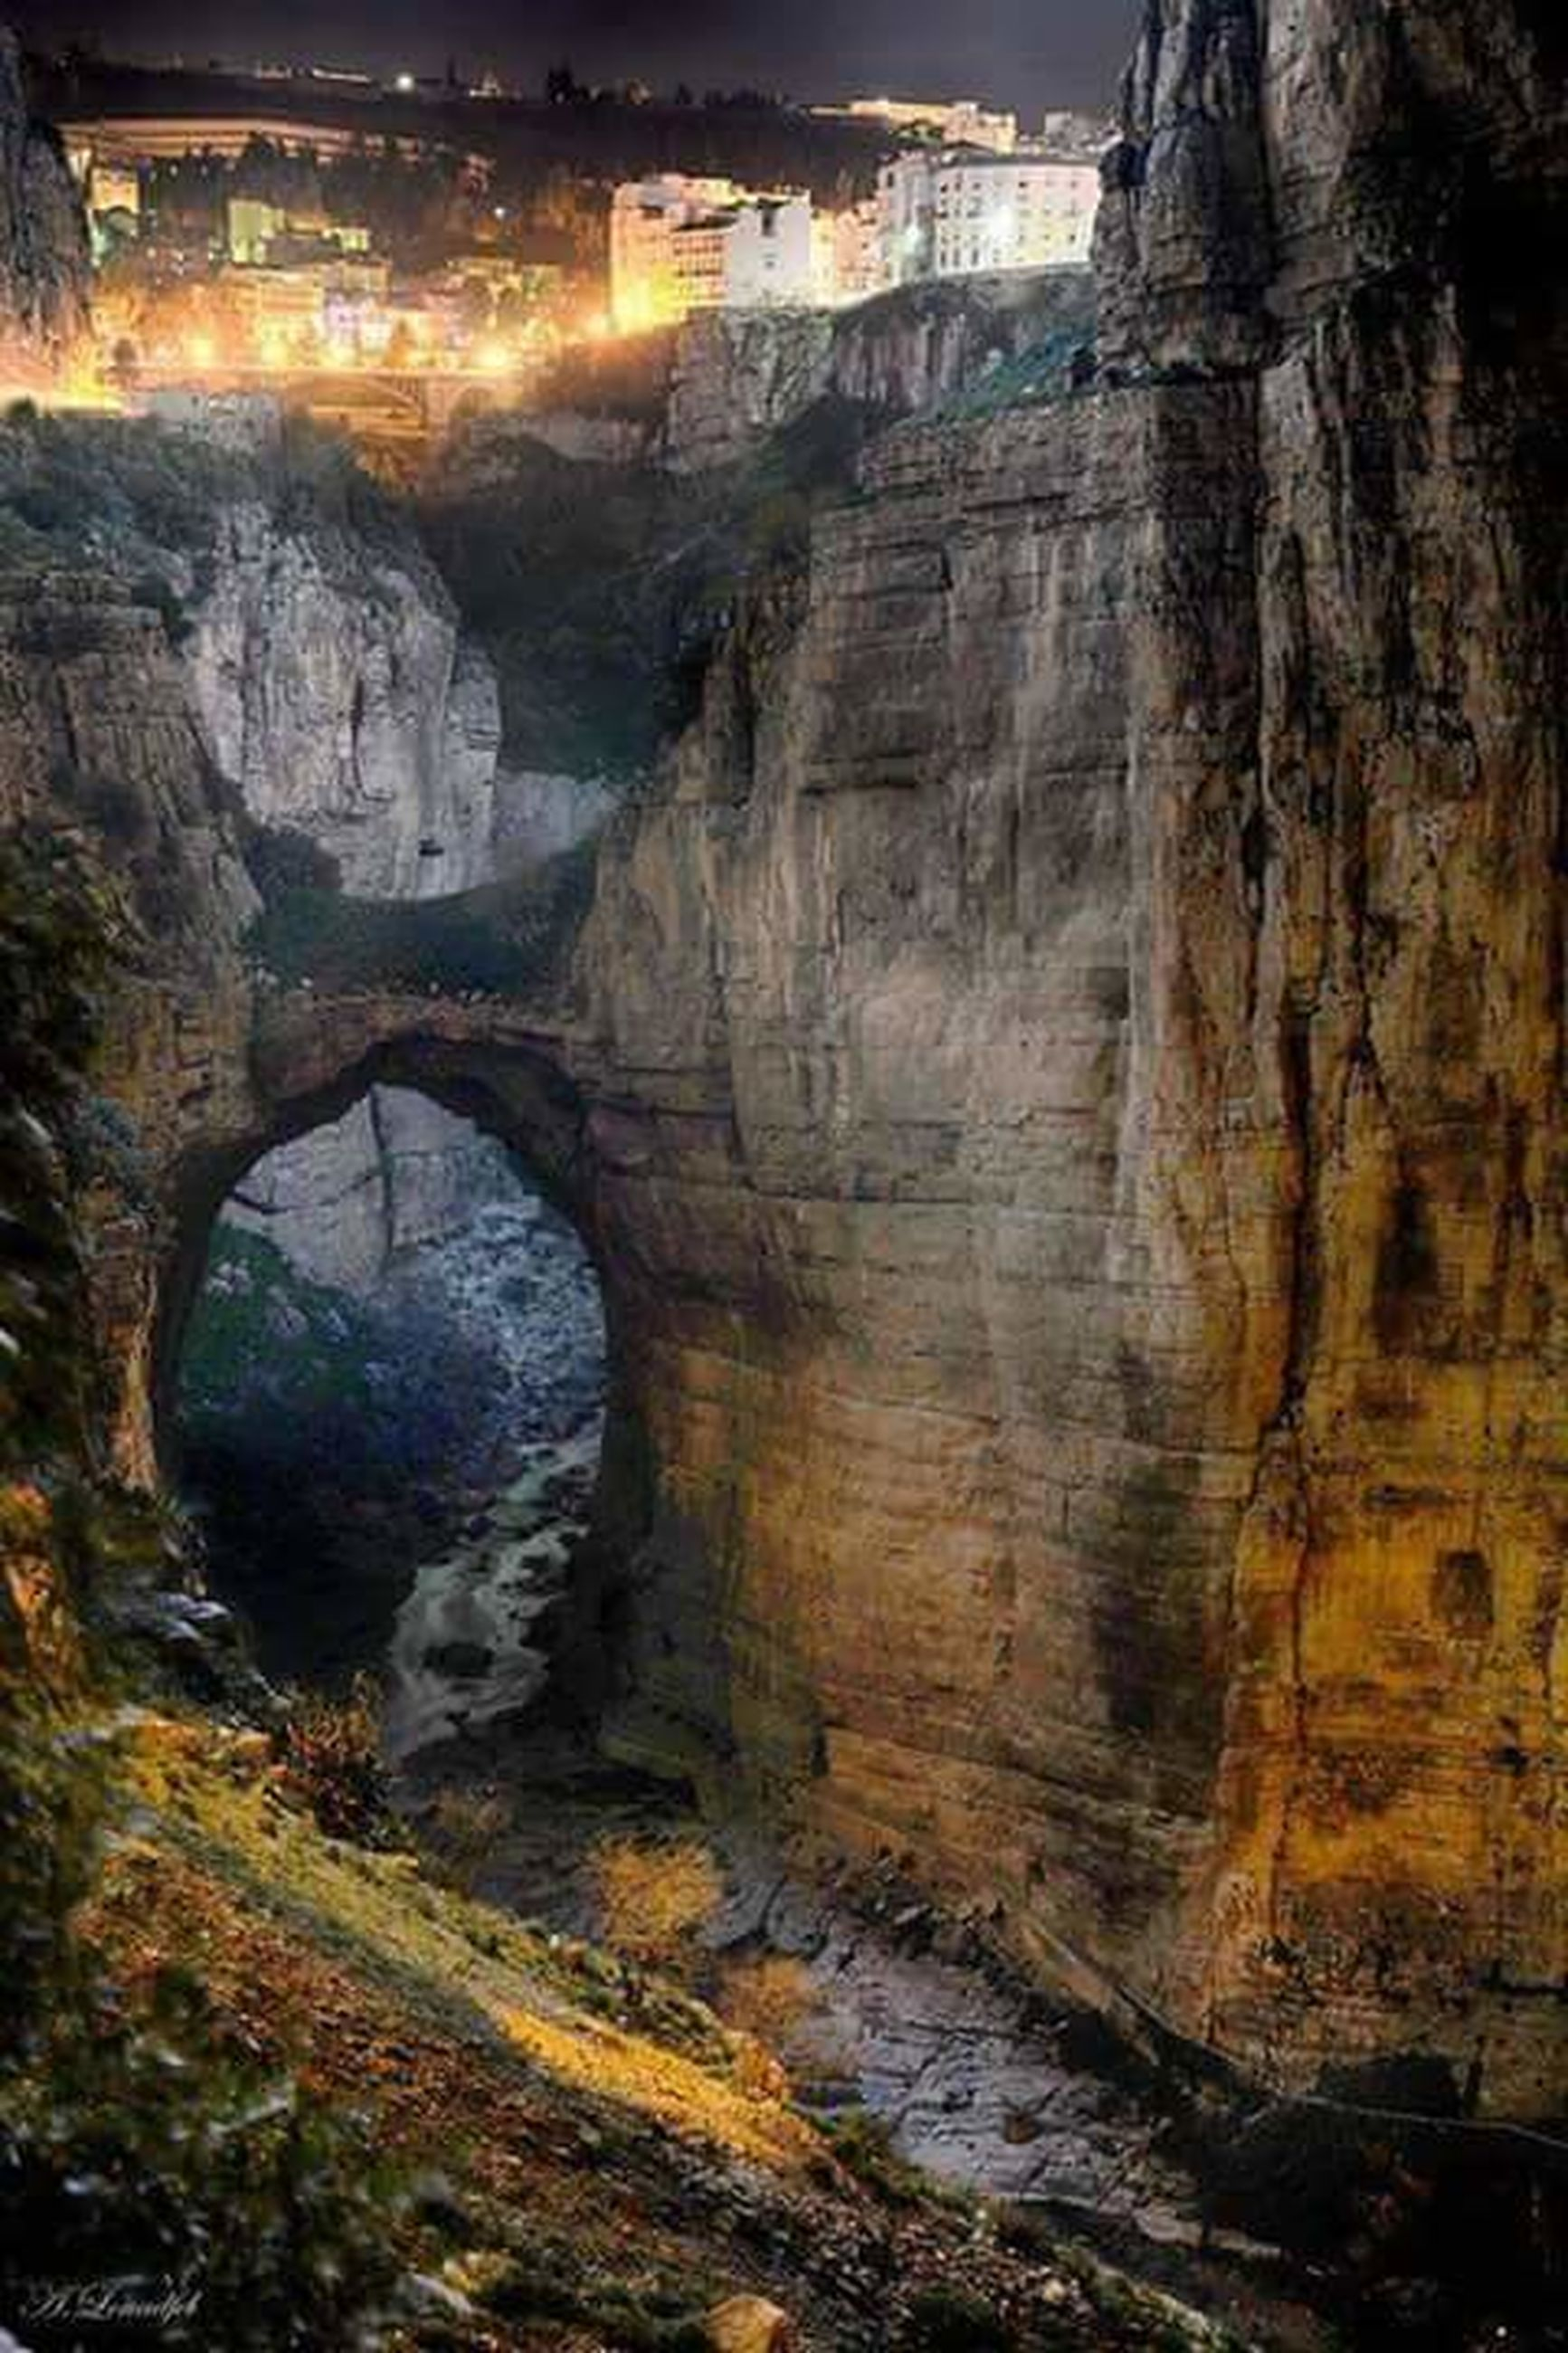 water, built structure, architecture, bridge - man made structure, scenics, tranquil scene, river, arch bridge, tranquility, tunnel, arch, rock formation, nature, outdoors, day, beauty in nature, non-urban scene, physical geography, canal, engineering, curve, remote, bridge, archway, no people